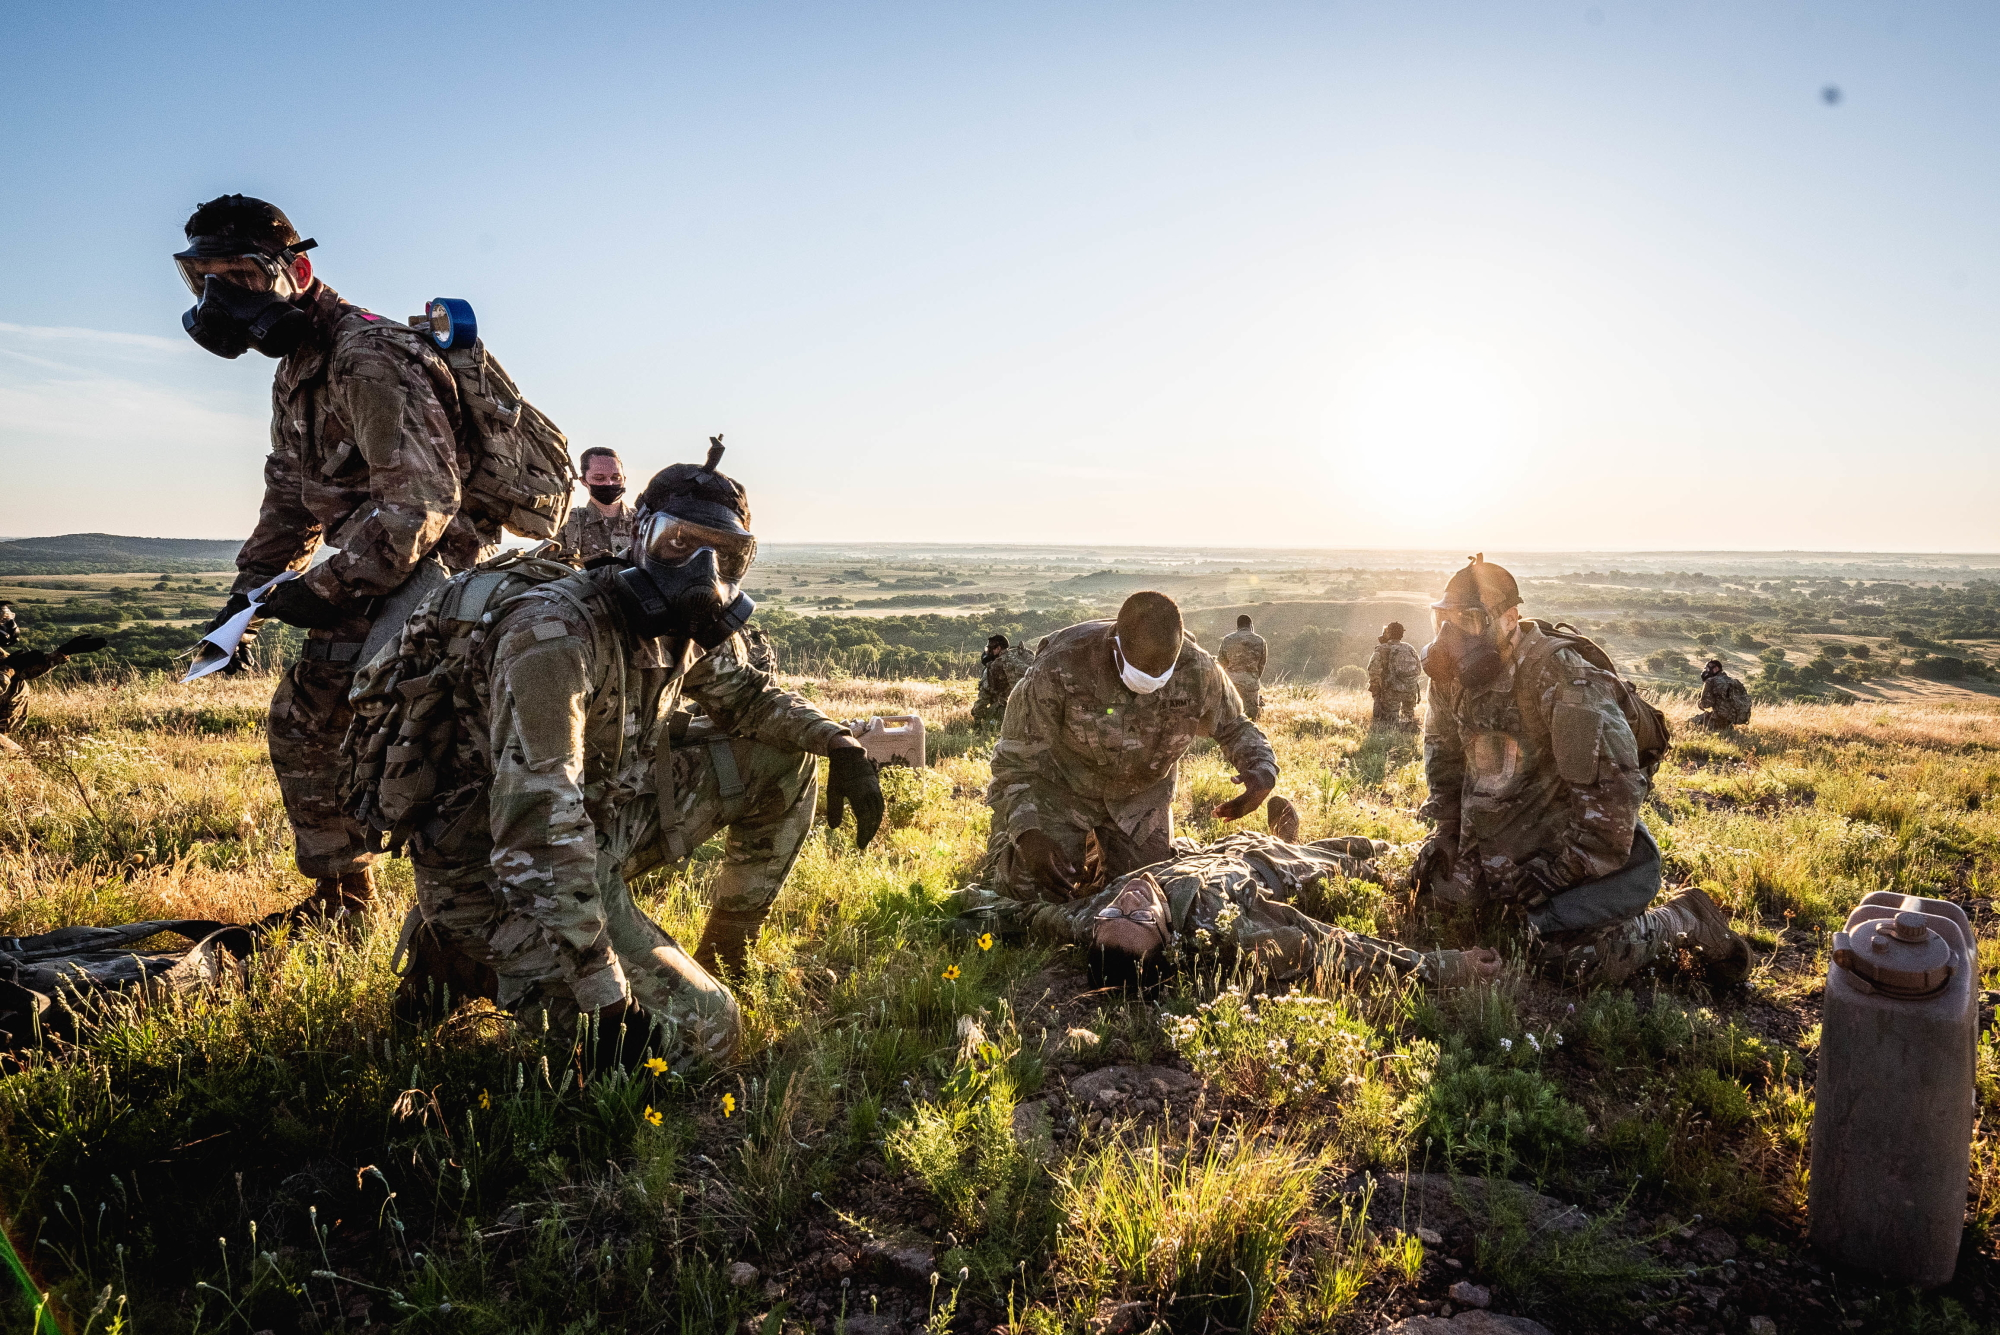 Soldiers treat a mock casualty during a physical training session at Medicine Bluffs on Fort Sill, Okla., May 29, 2020. All soldiers had to wear a face covering to abide by COVID-19 guidance and to ask a challenging element to the session. (Sgt. Amanda Hunt/Army)